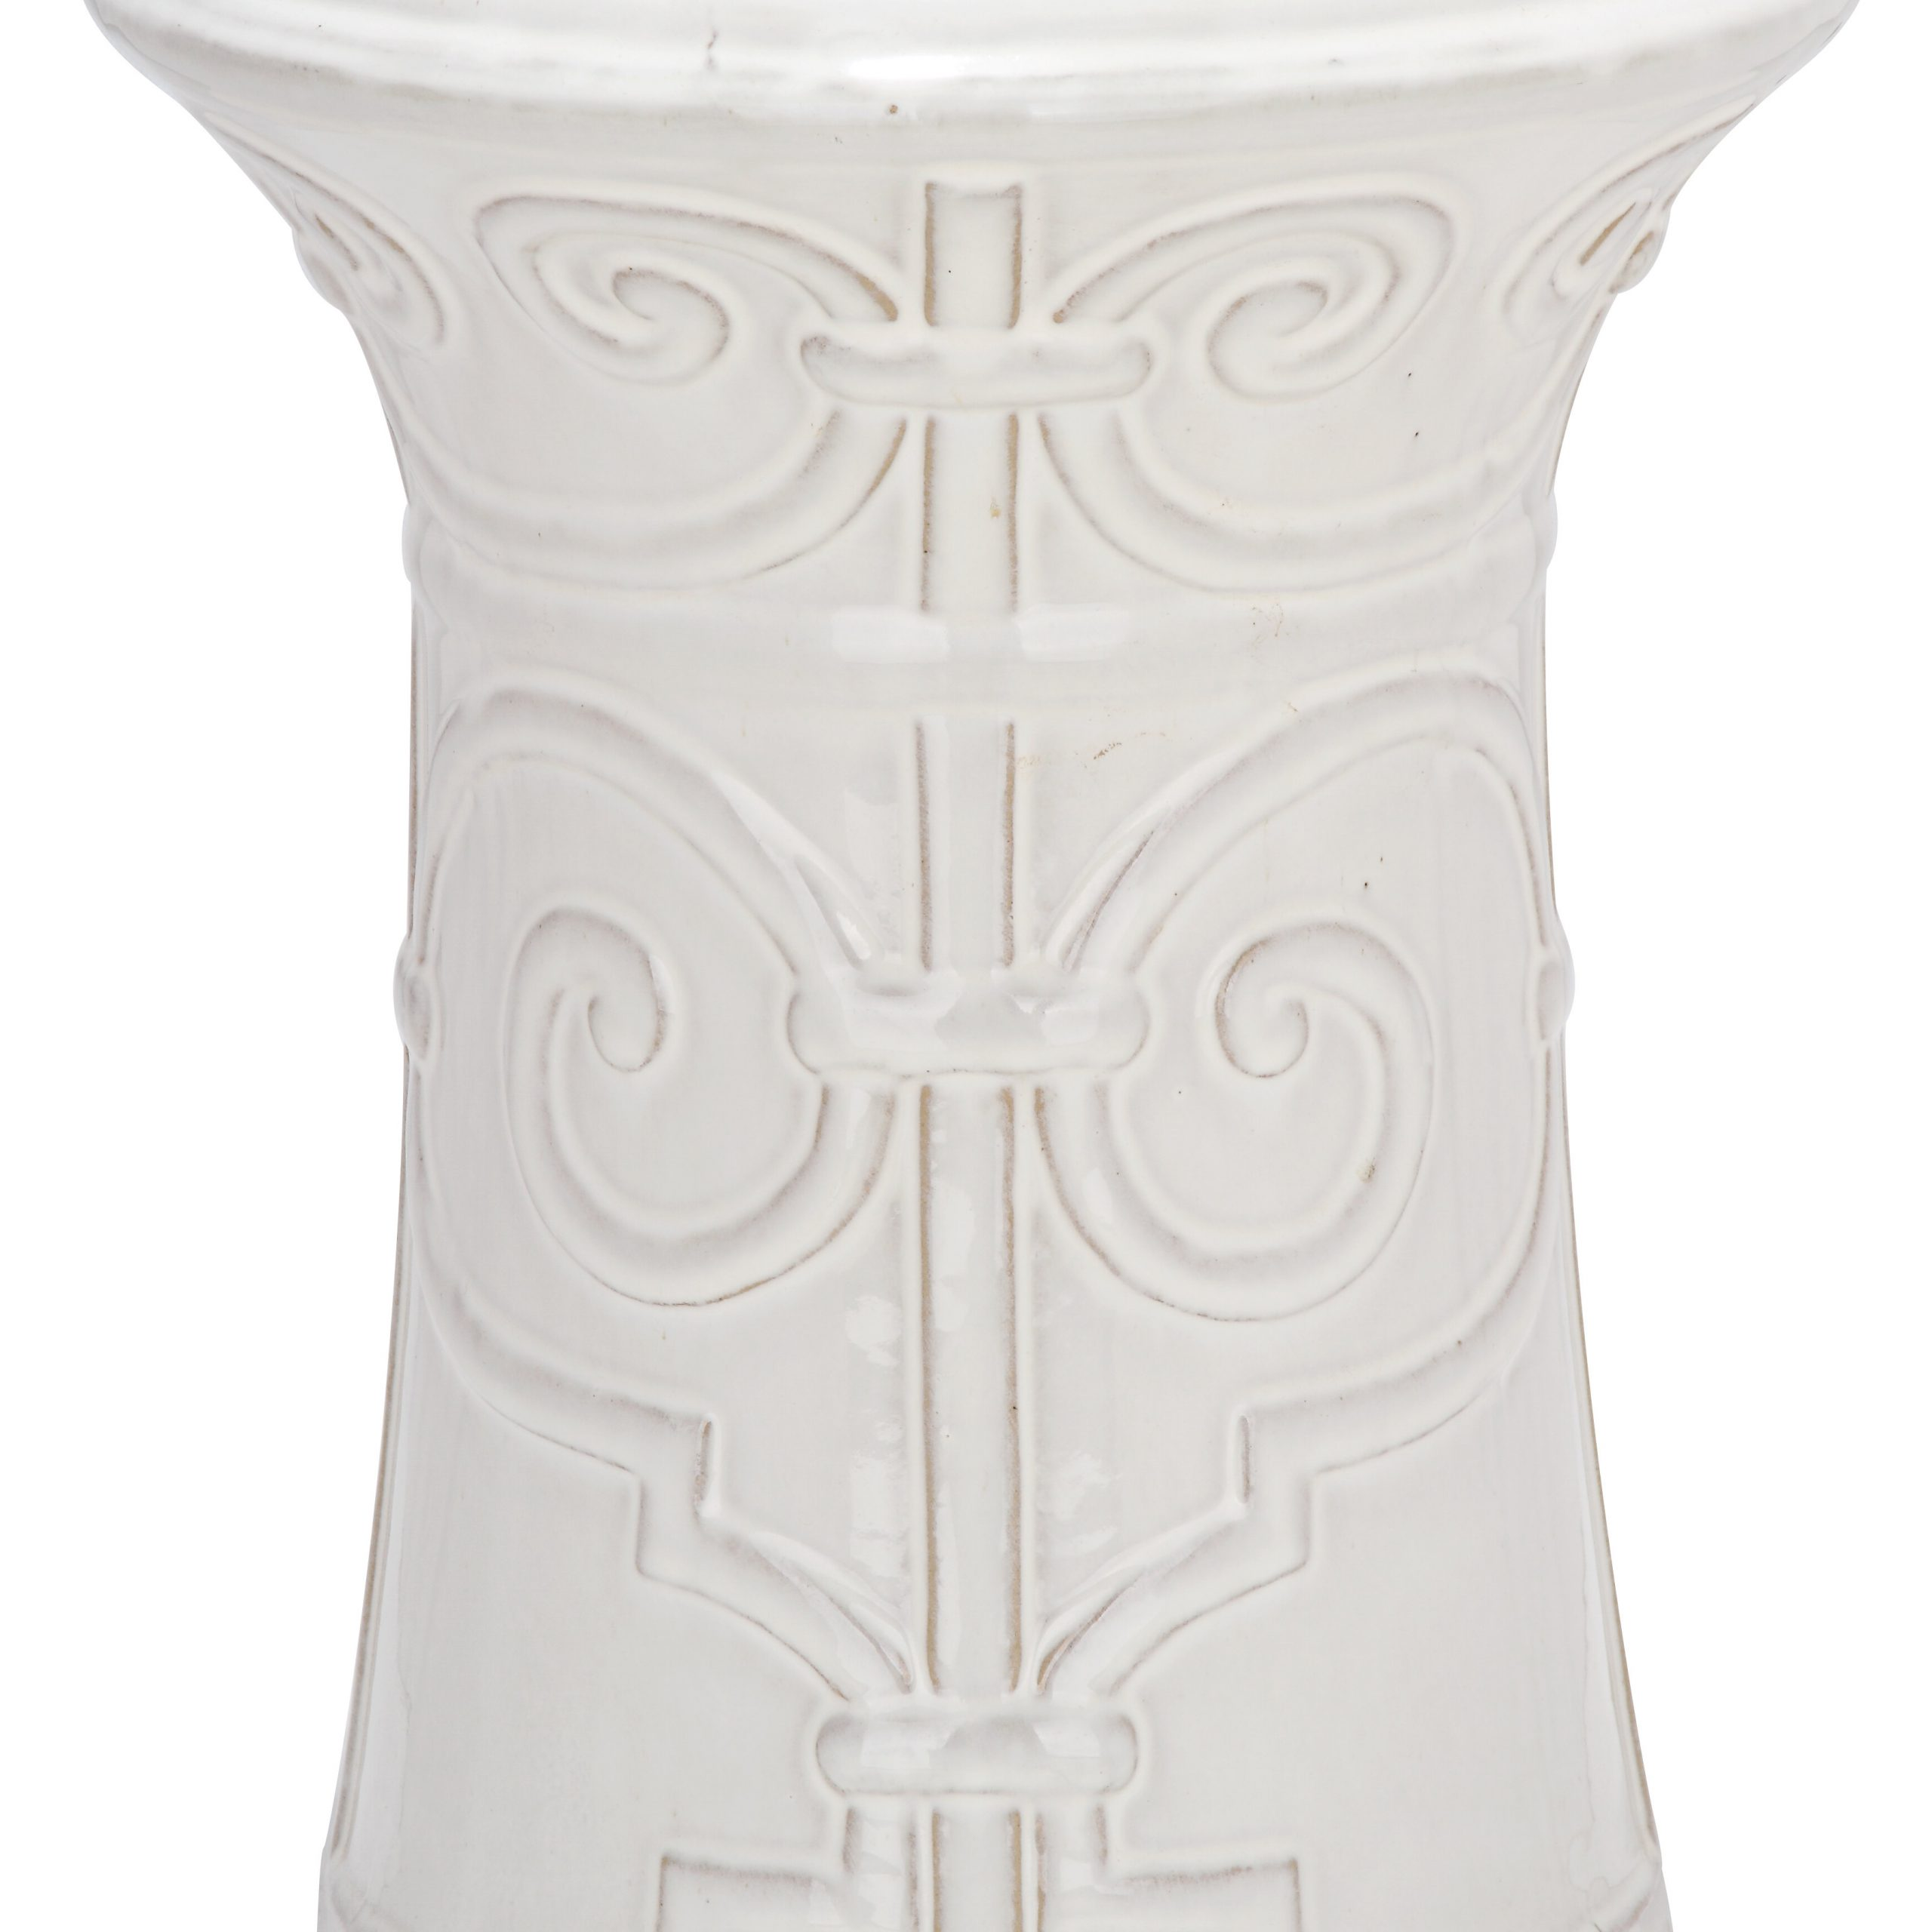 Most Popular Janke Floral Garden Stools With Regard To Imperial Scroll Ceramic Garden Stool (View 19 of 30)